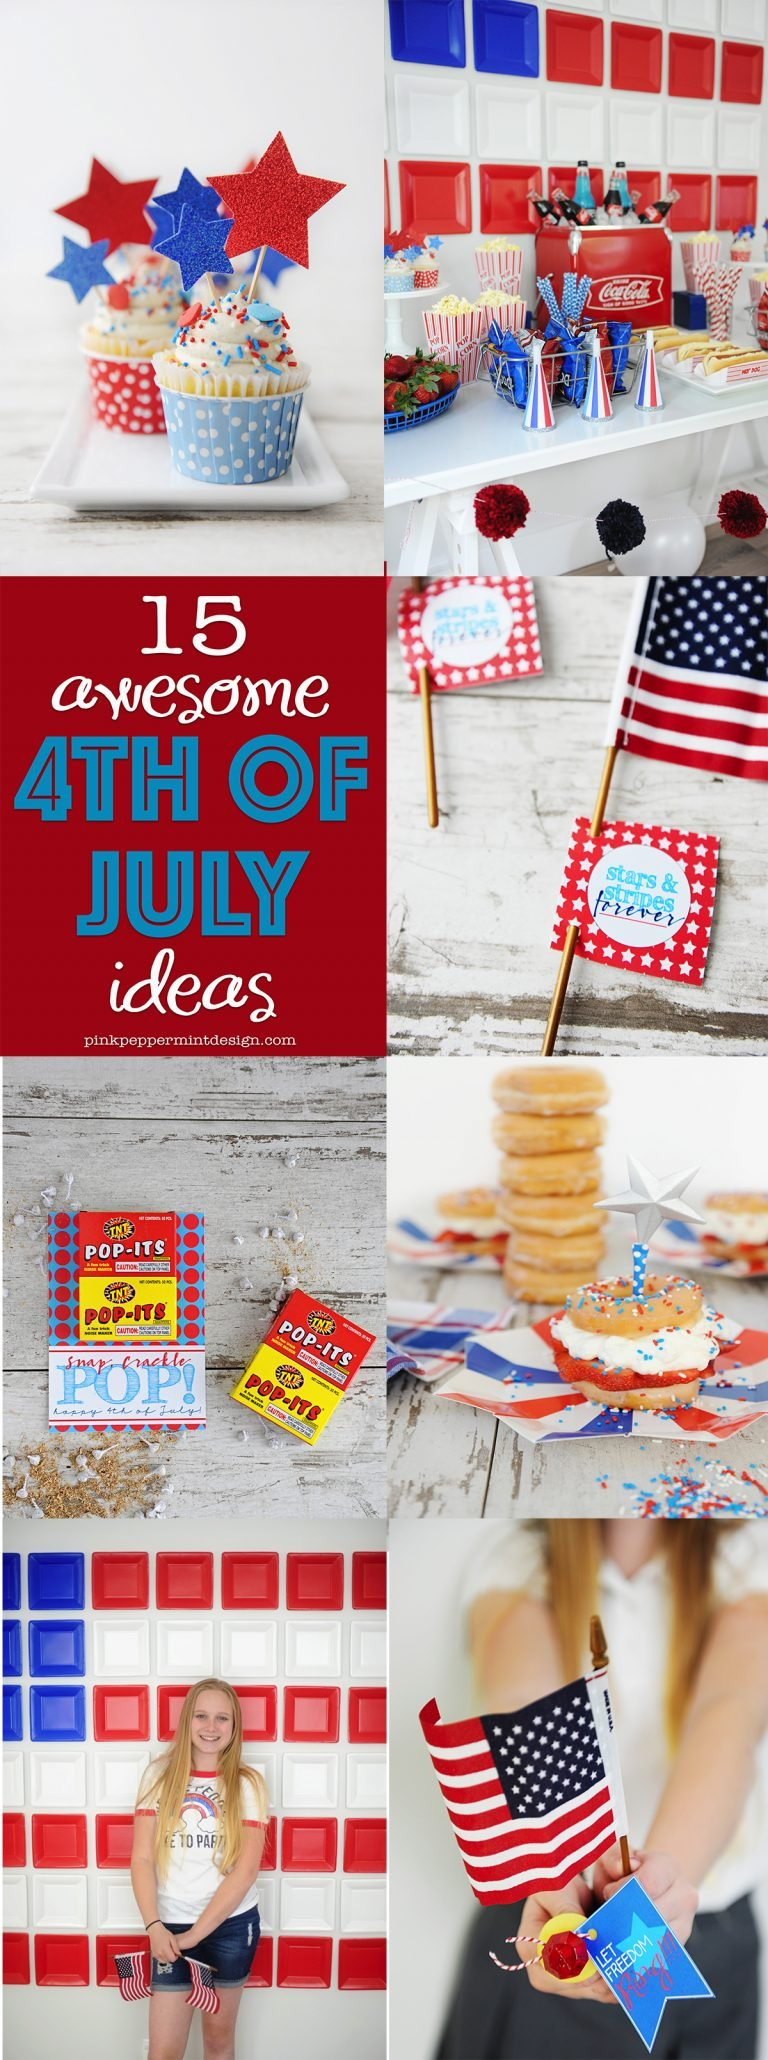 Awesome 4th of july ideas